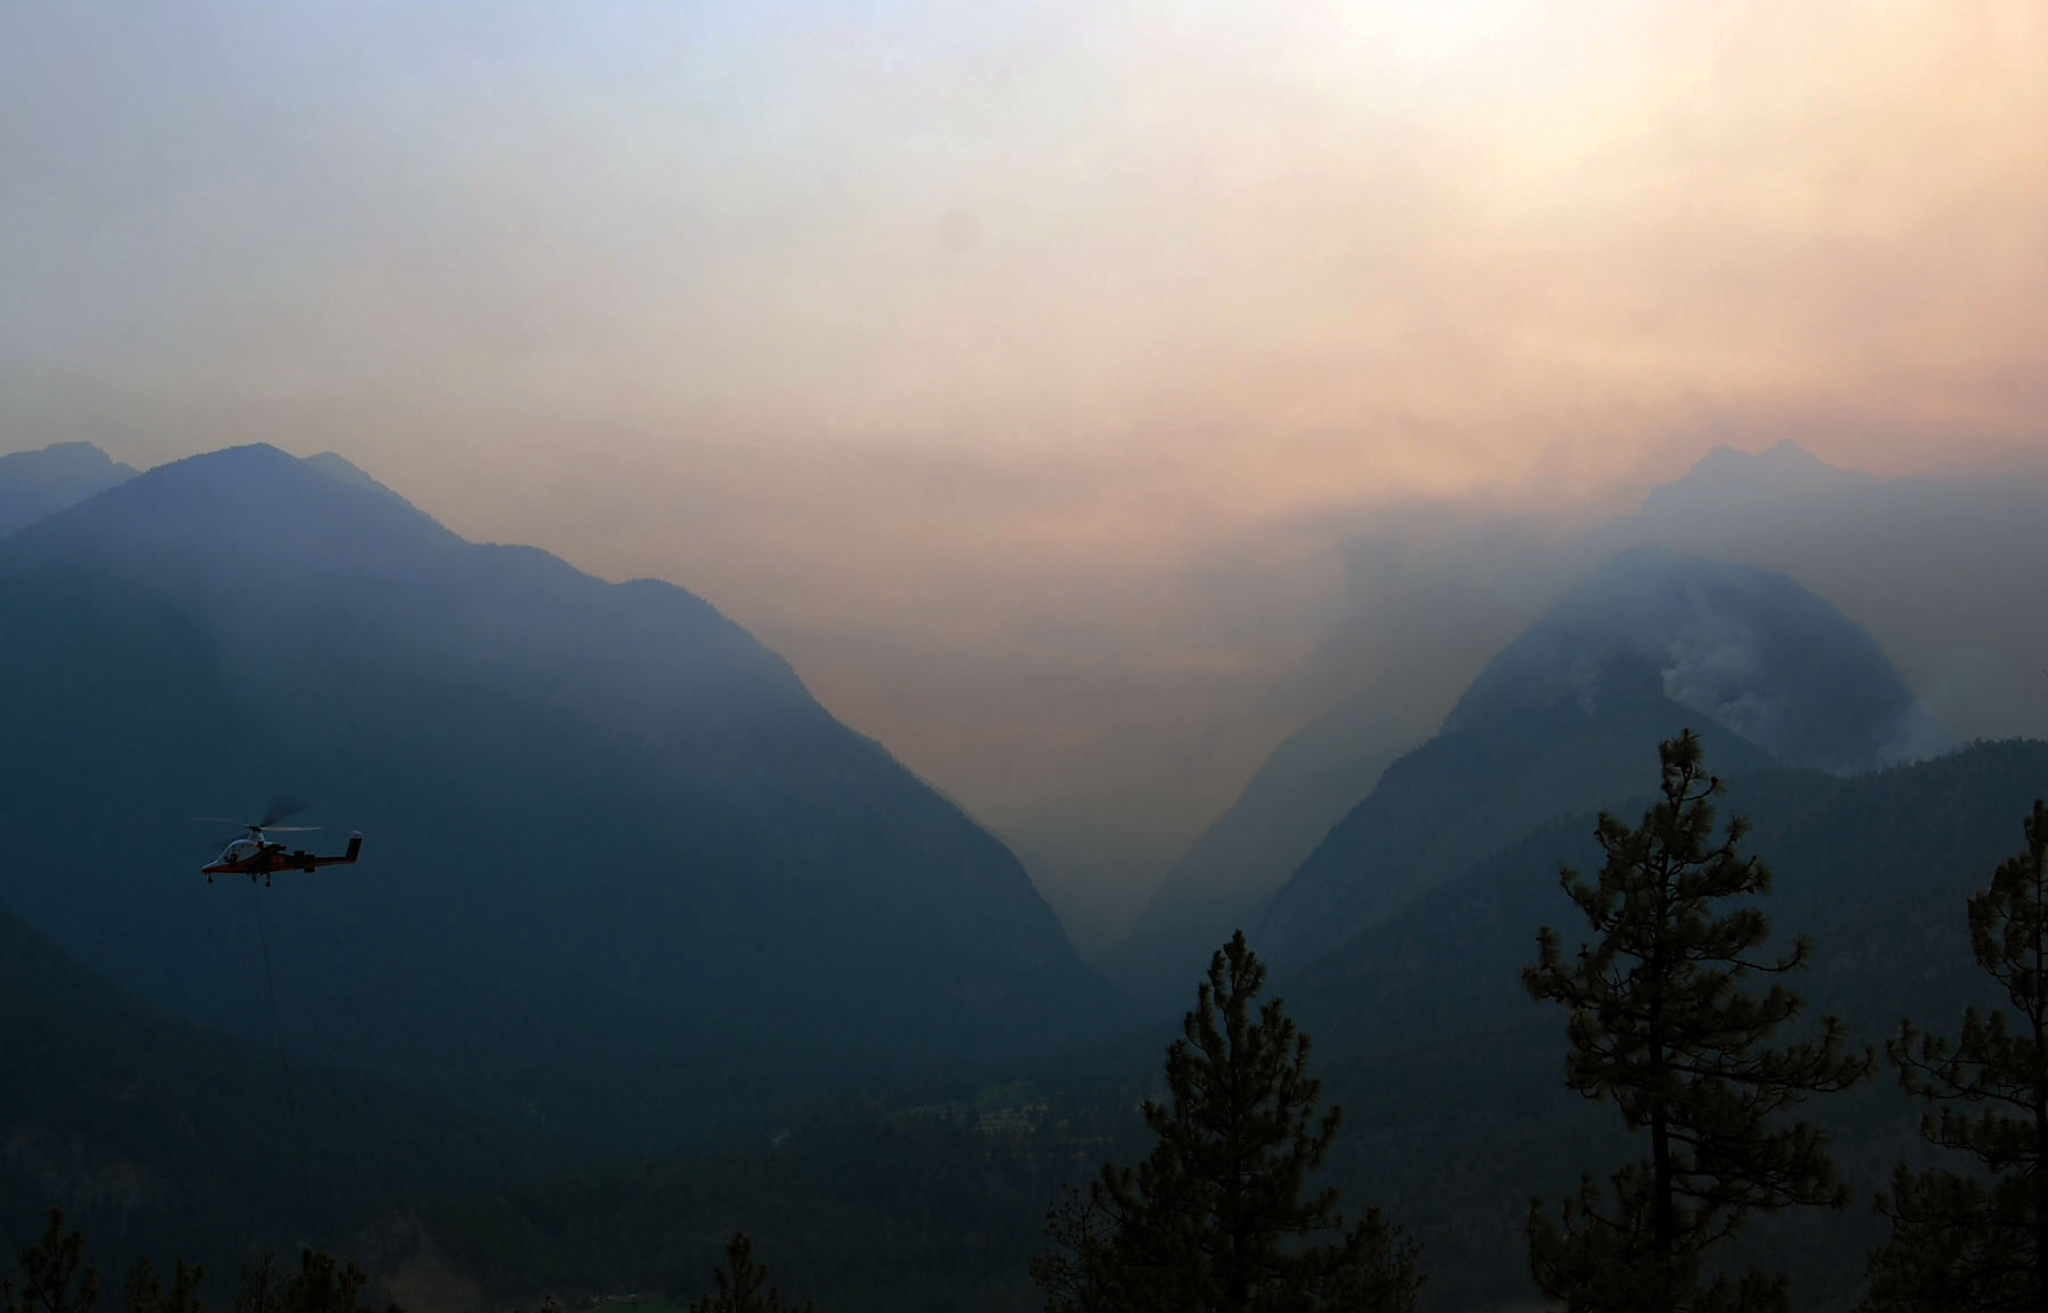 Wildfire haze obscures the Fraser River valley near Lytton, B.C. in 2009. Photo:  Zack Jackson  / Flickr